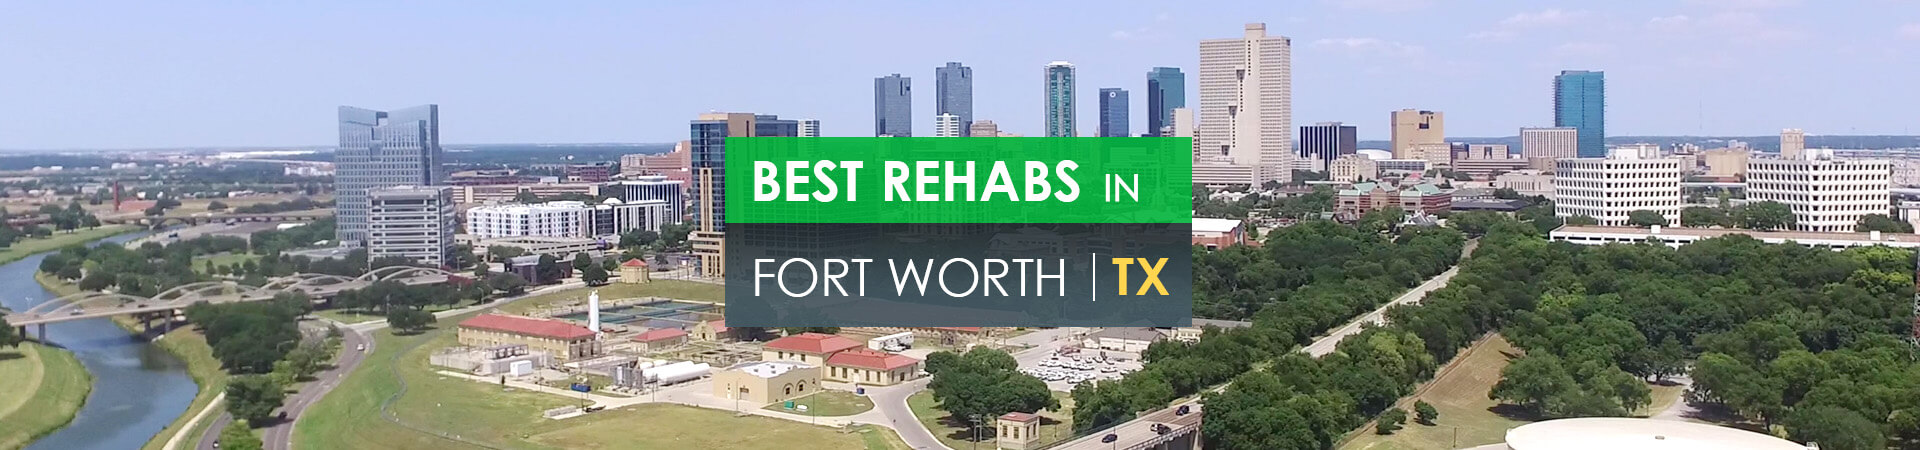 Best rehabs in Fort Worth, TX